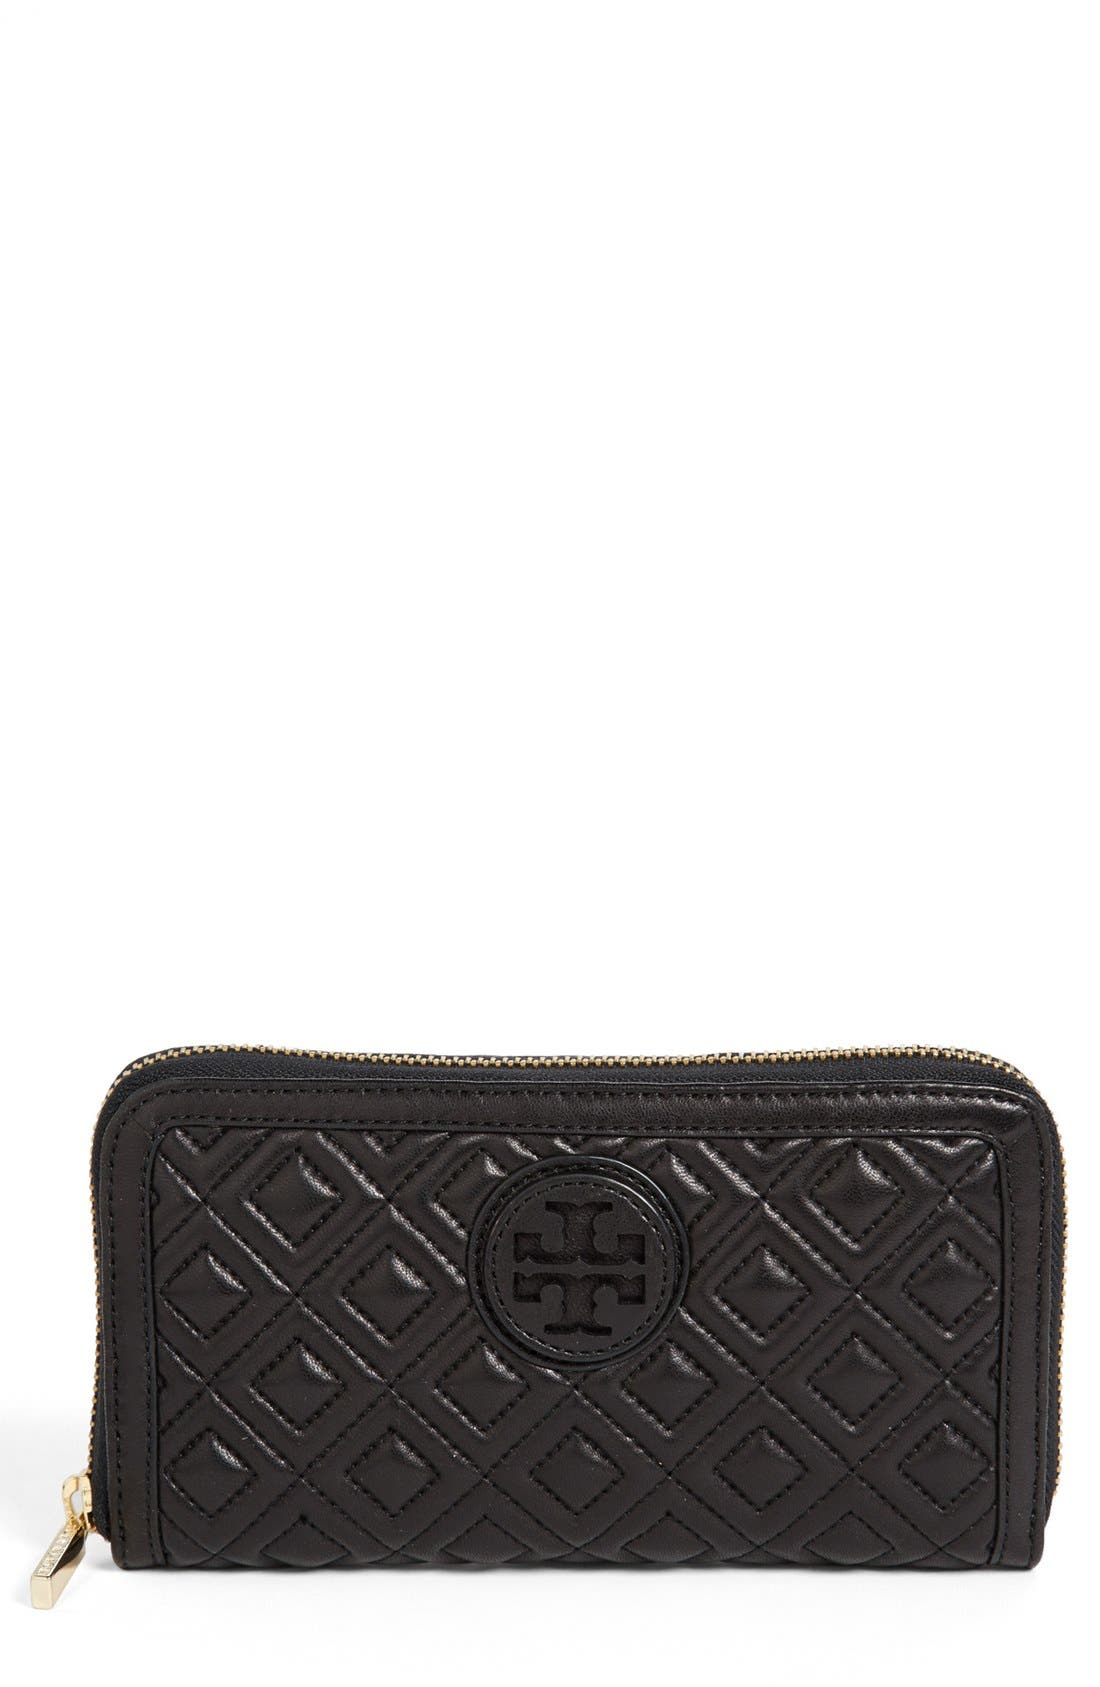 Alternate Image 1 Selected - Tory Burch 'Marion' Continental Wallet